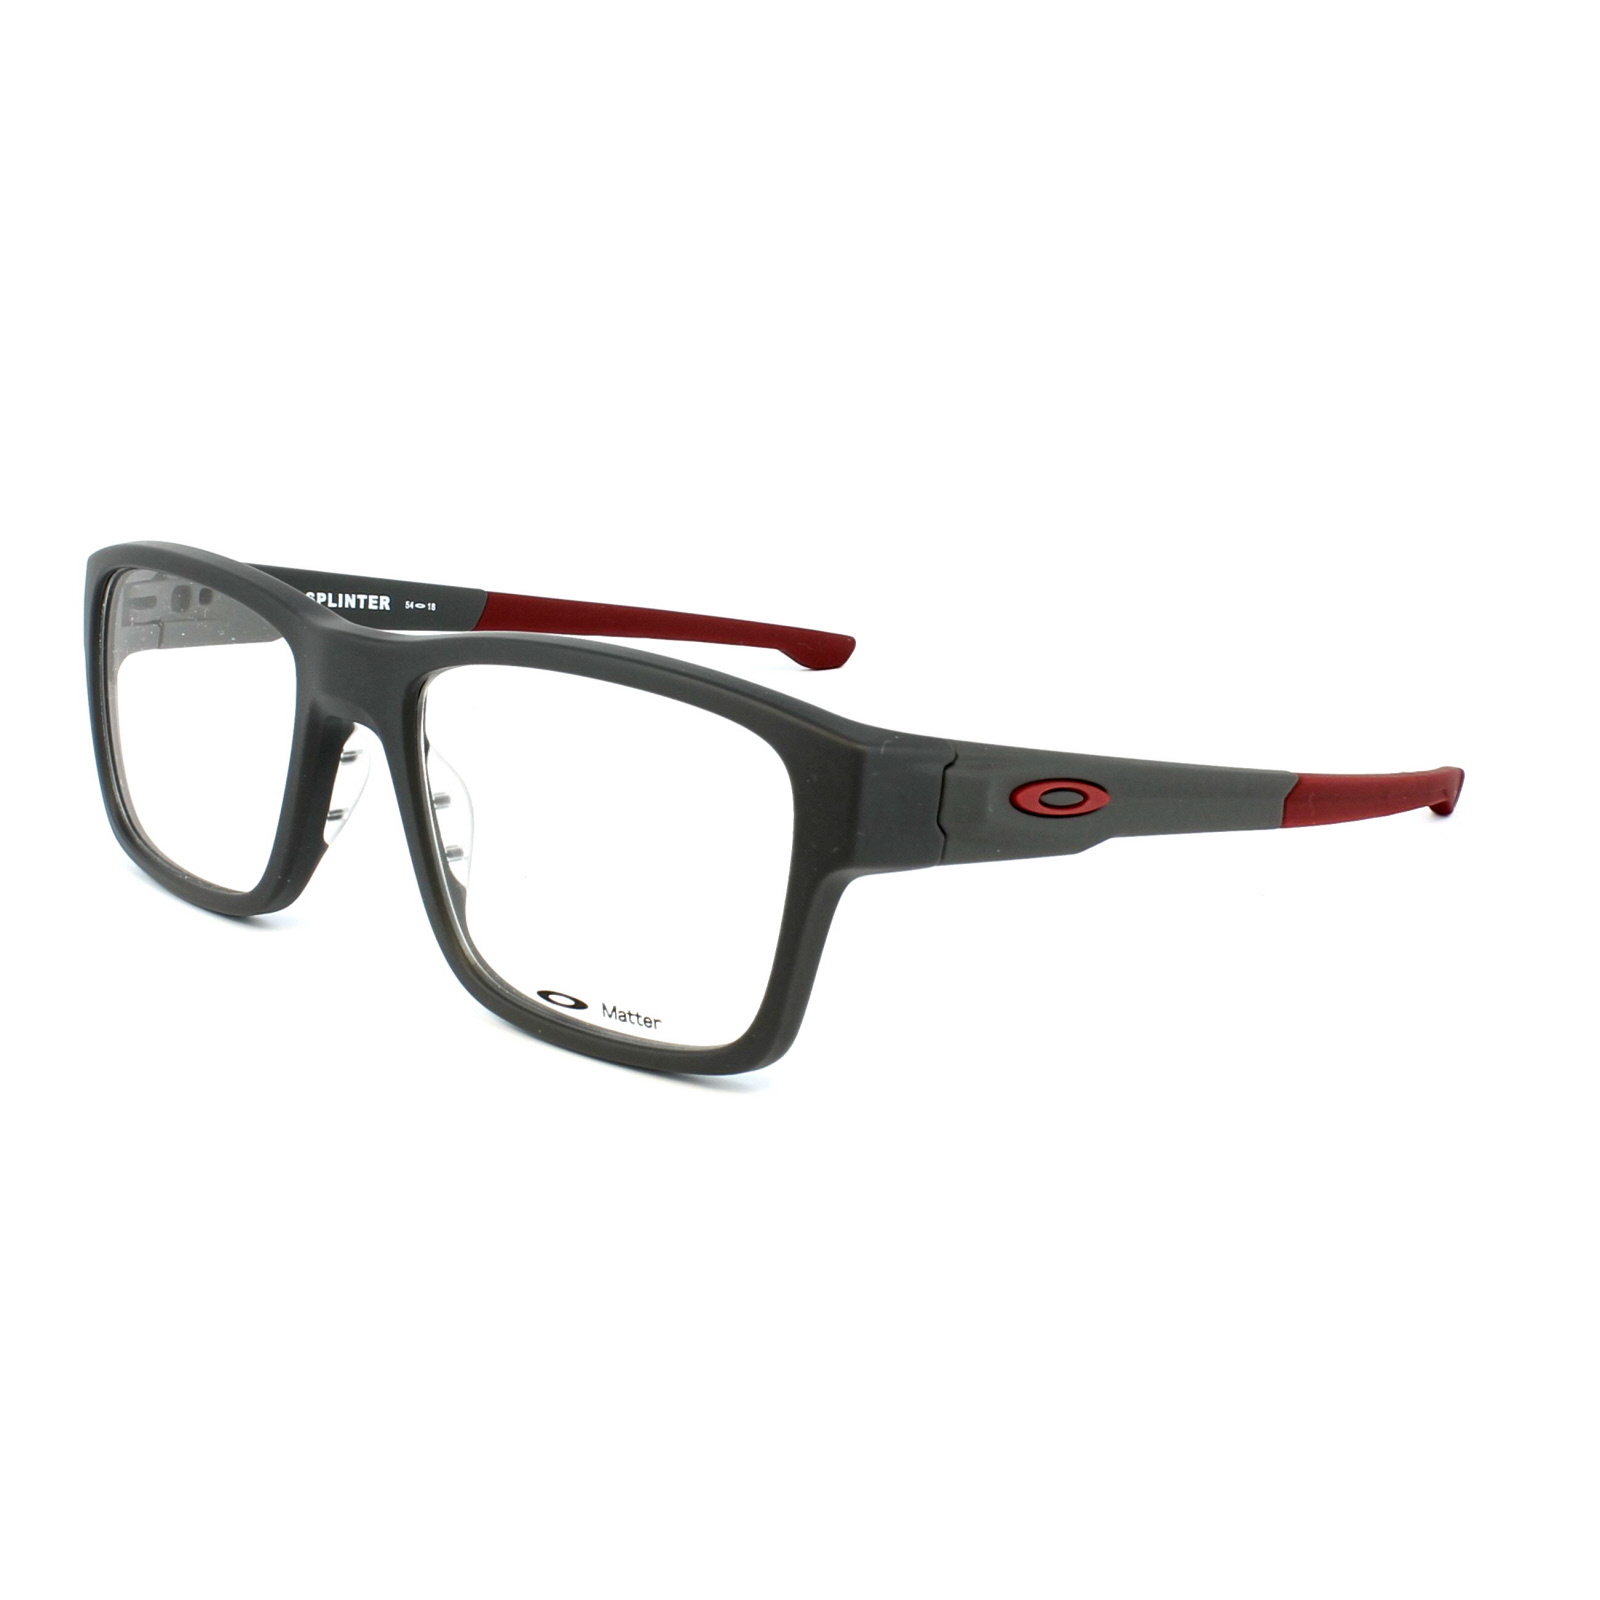 cheap oakley glass frames  oakley splinter glasses frames